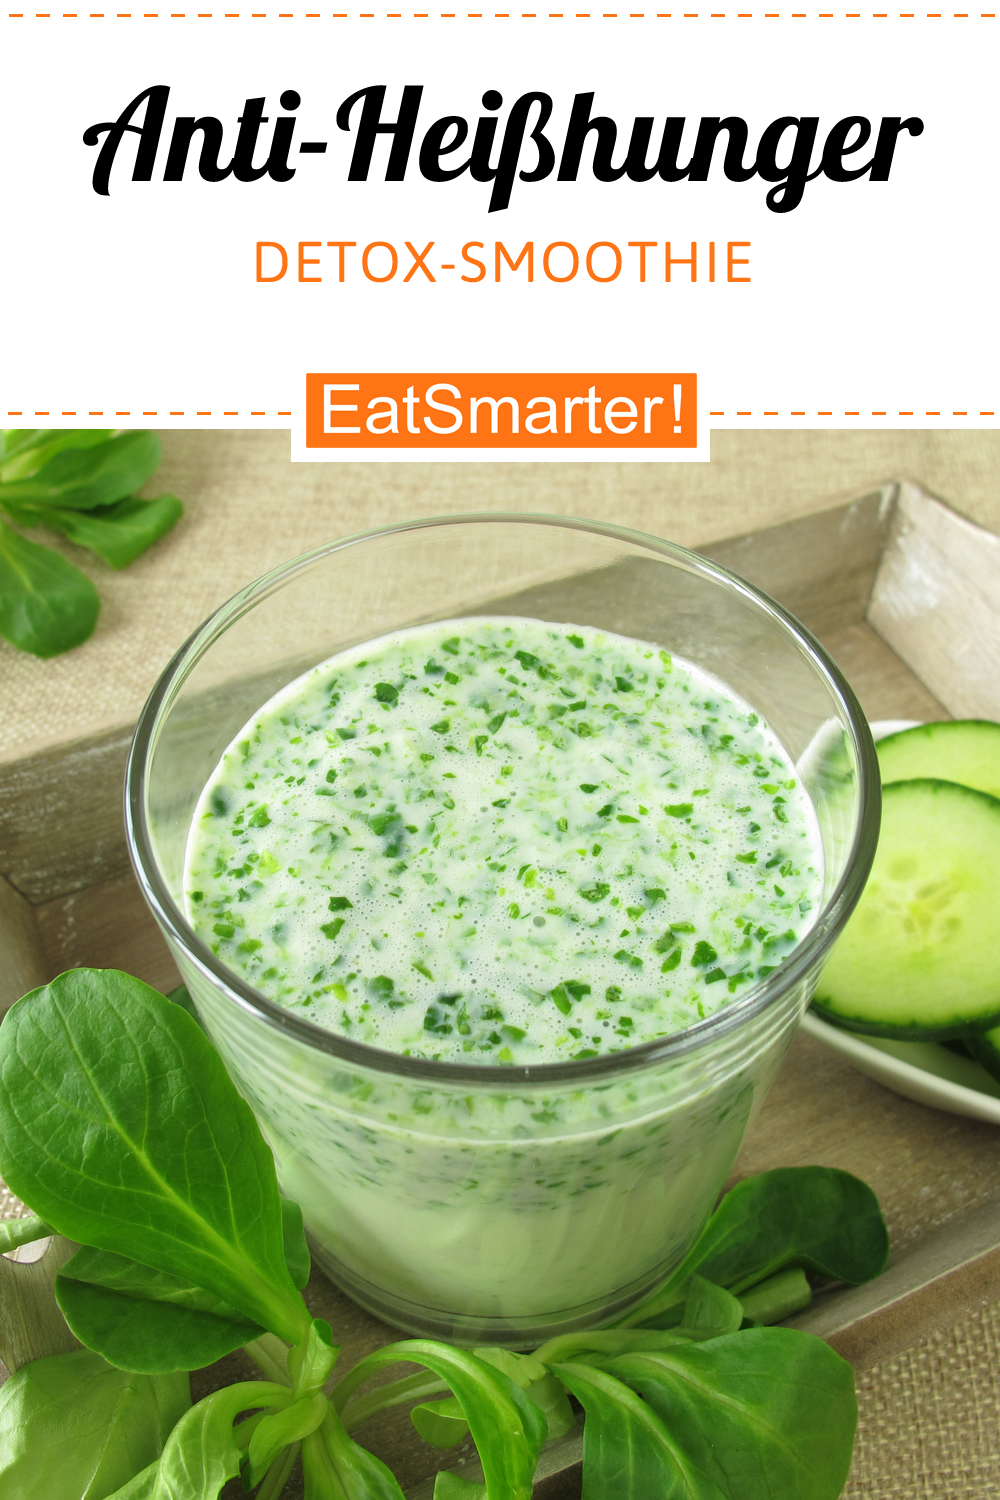 Anti-Heißhunger - Detox-Smoothie